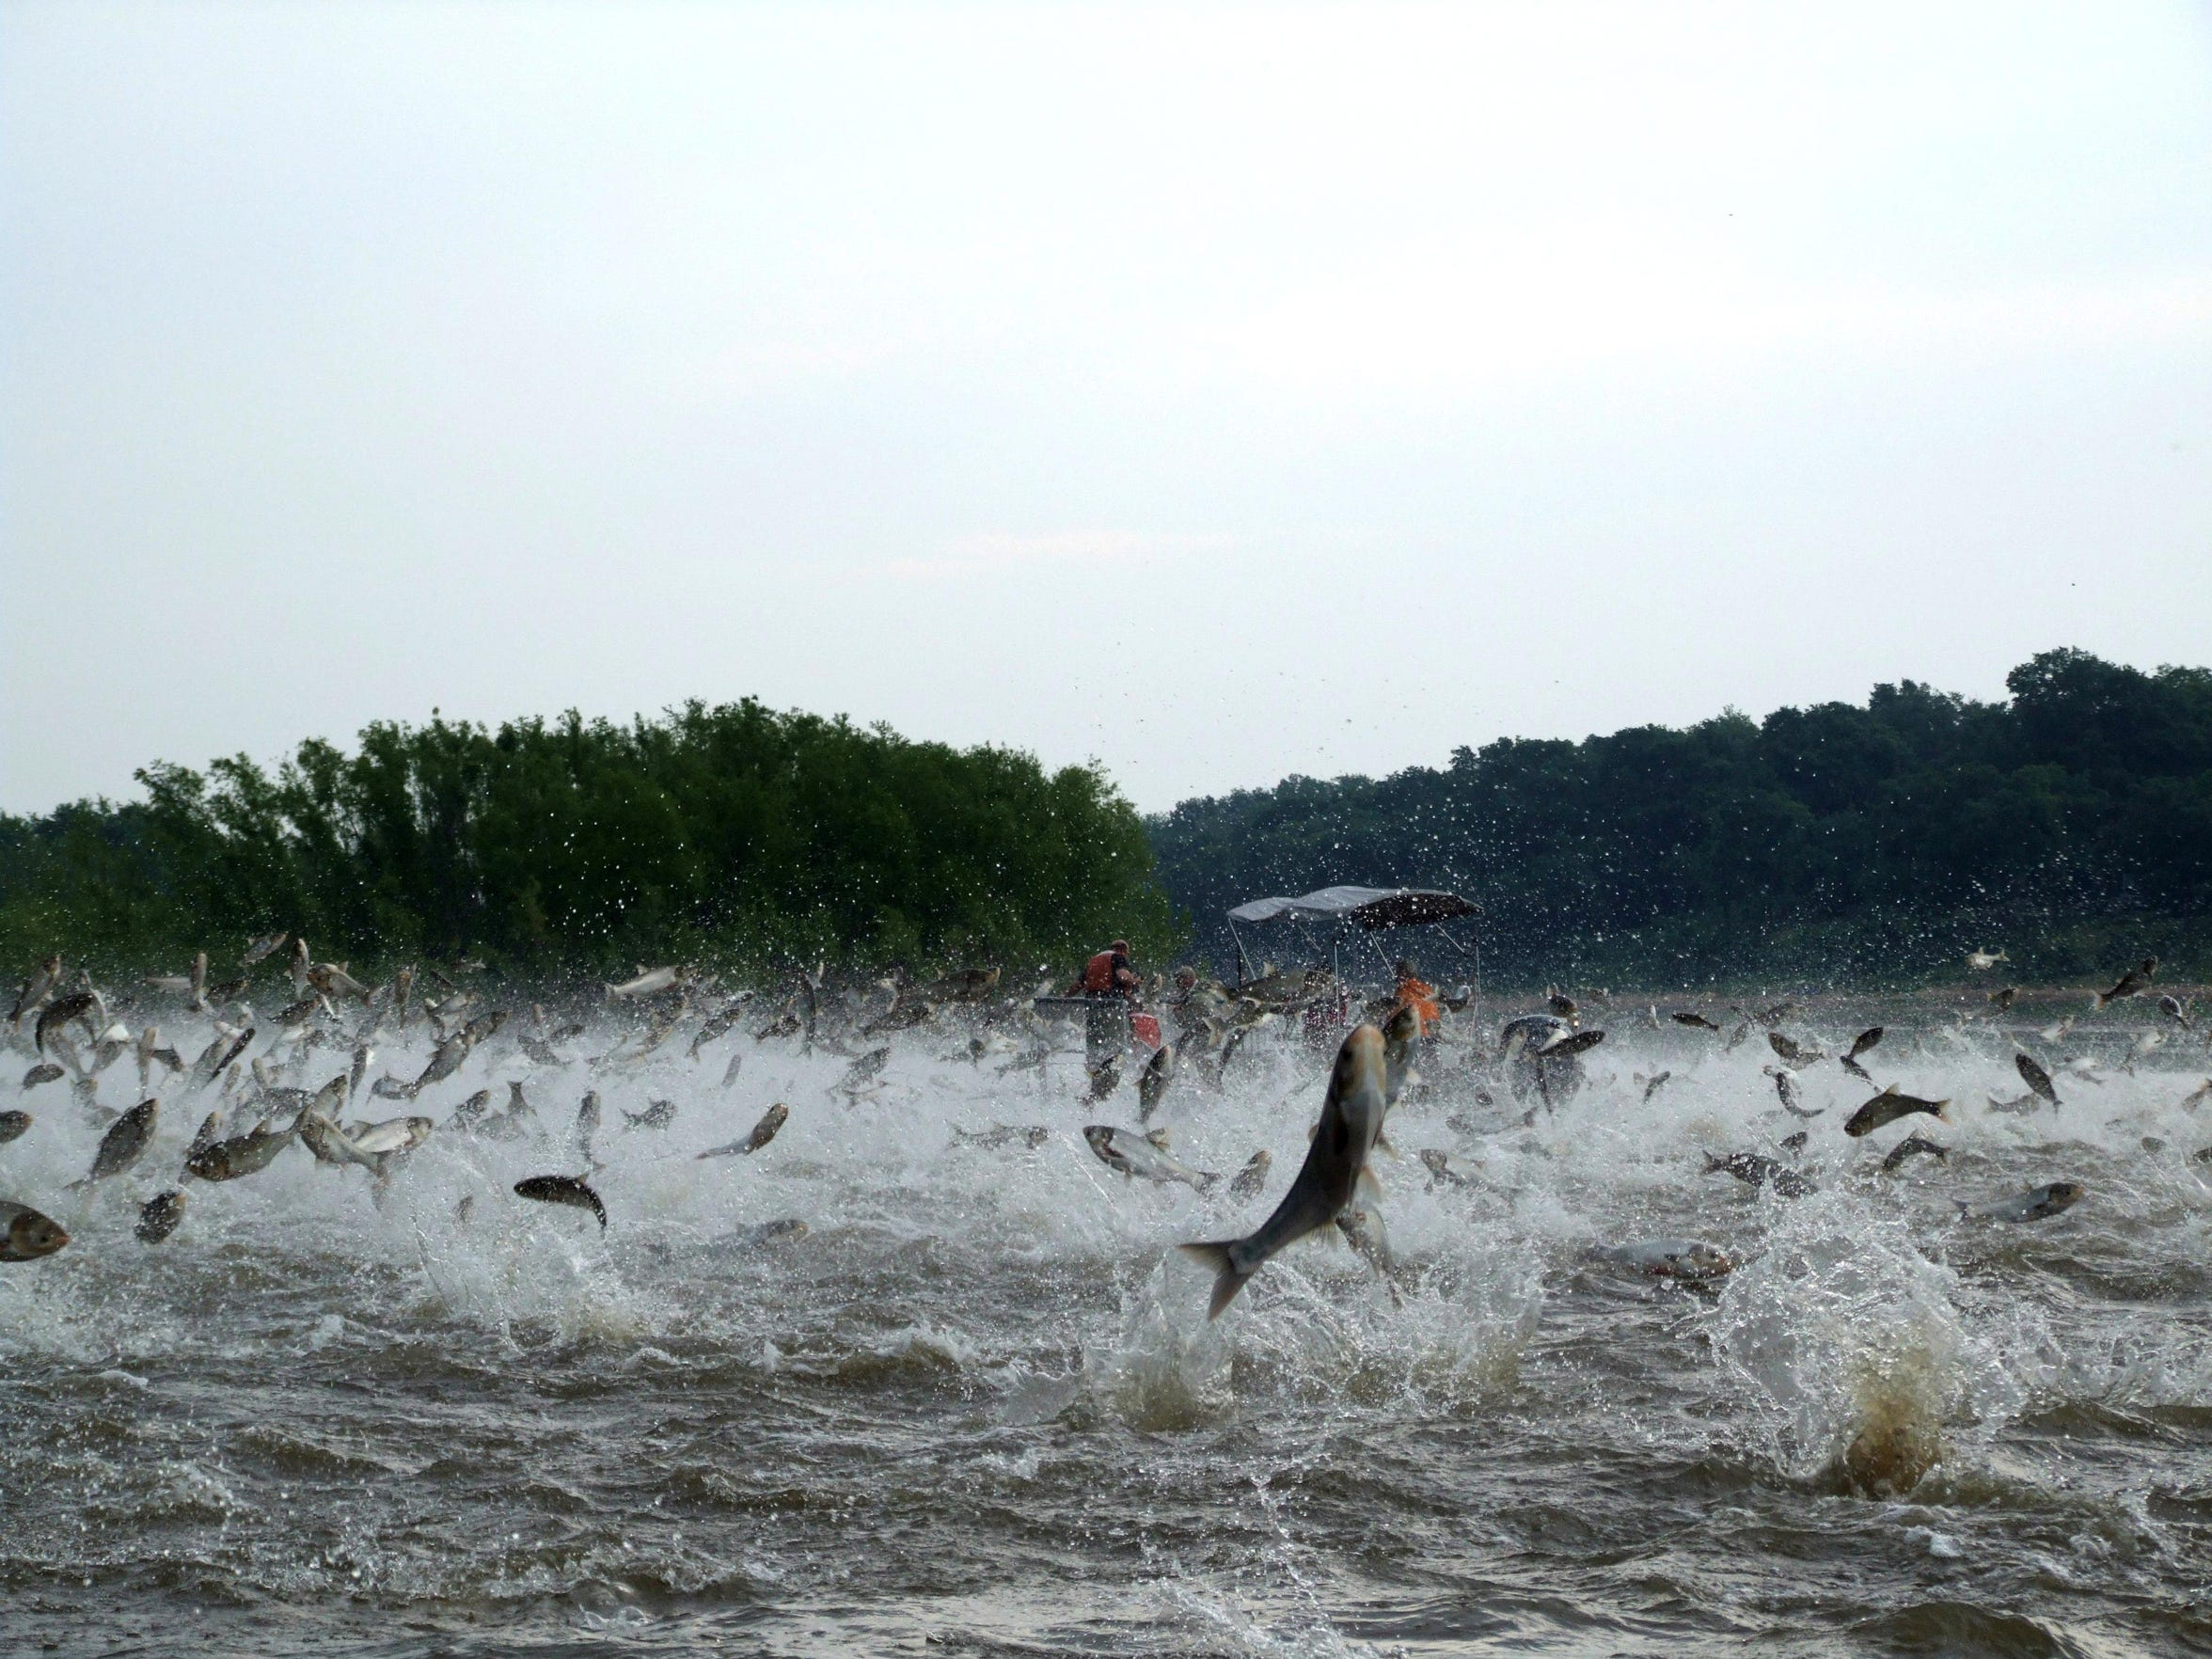 This photo provided by the Illinois River Biological Station shows silver carp jumping out of the water after being disturbed by sounds of watercraft.